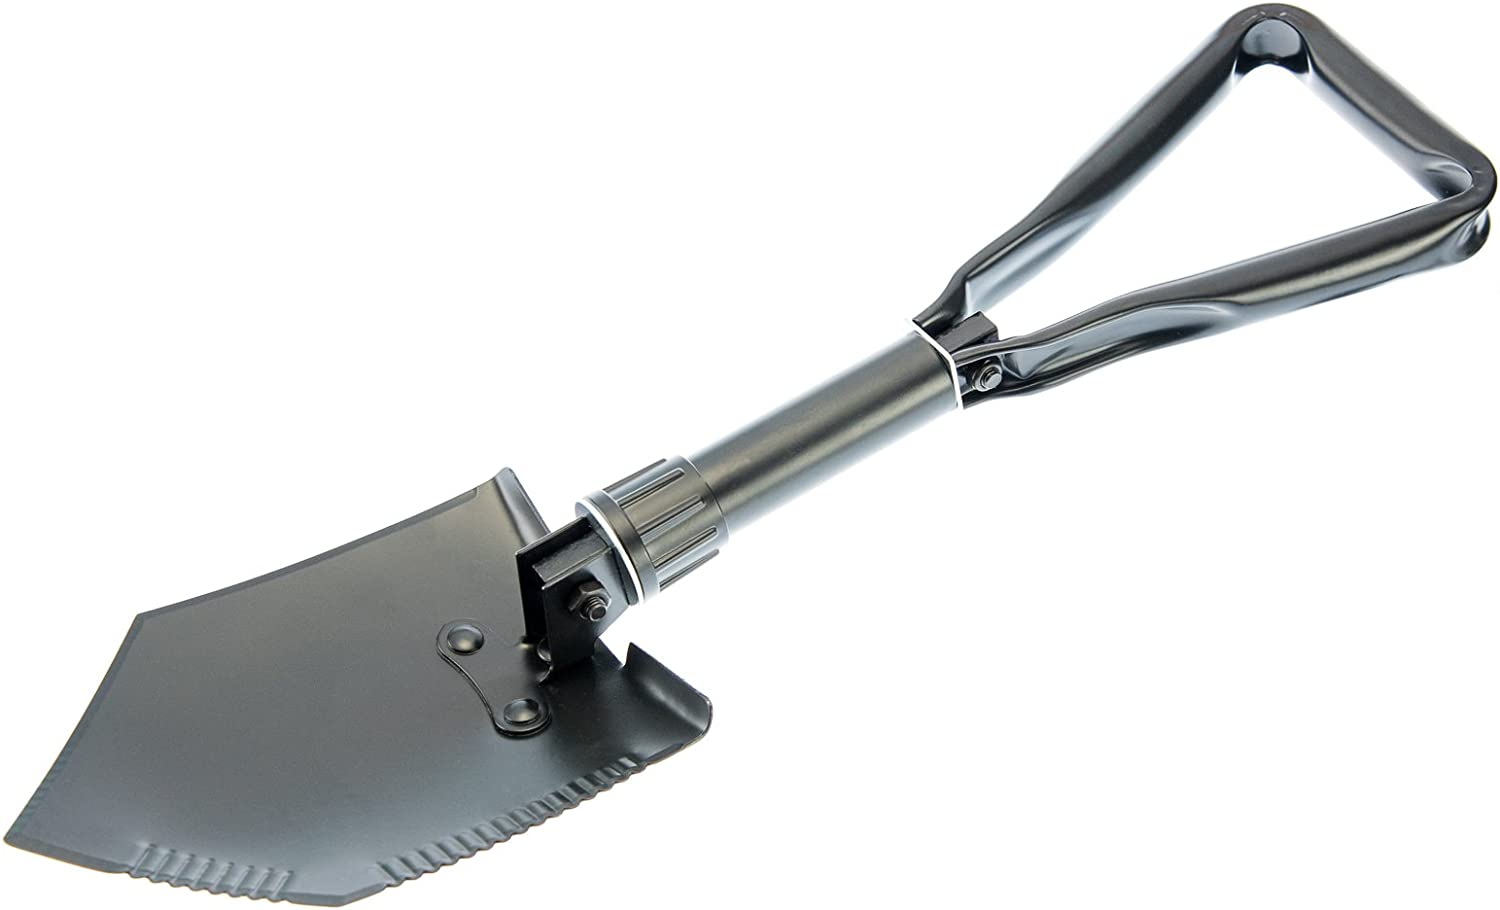 Silverline Compact Folding Shovel-Ideal for camping-easily stored